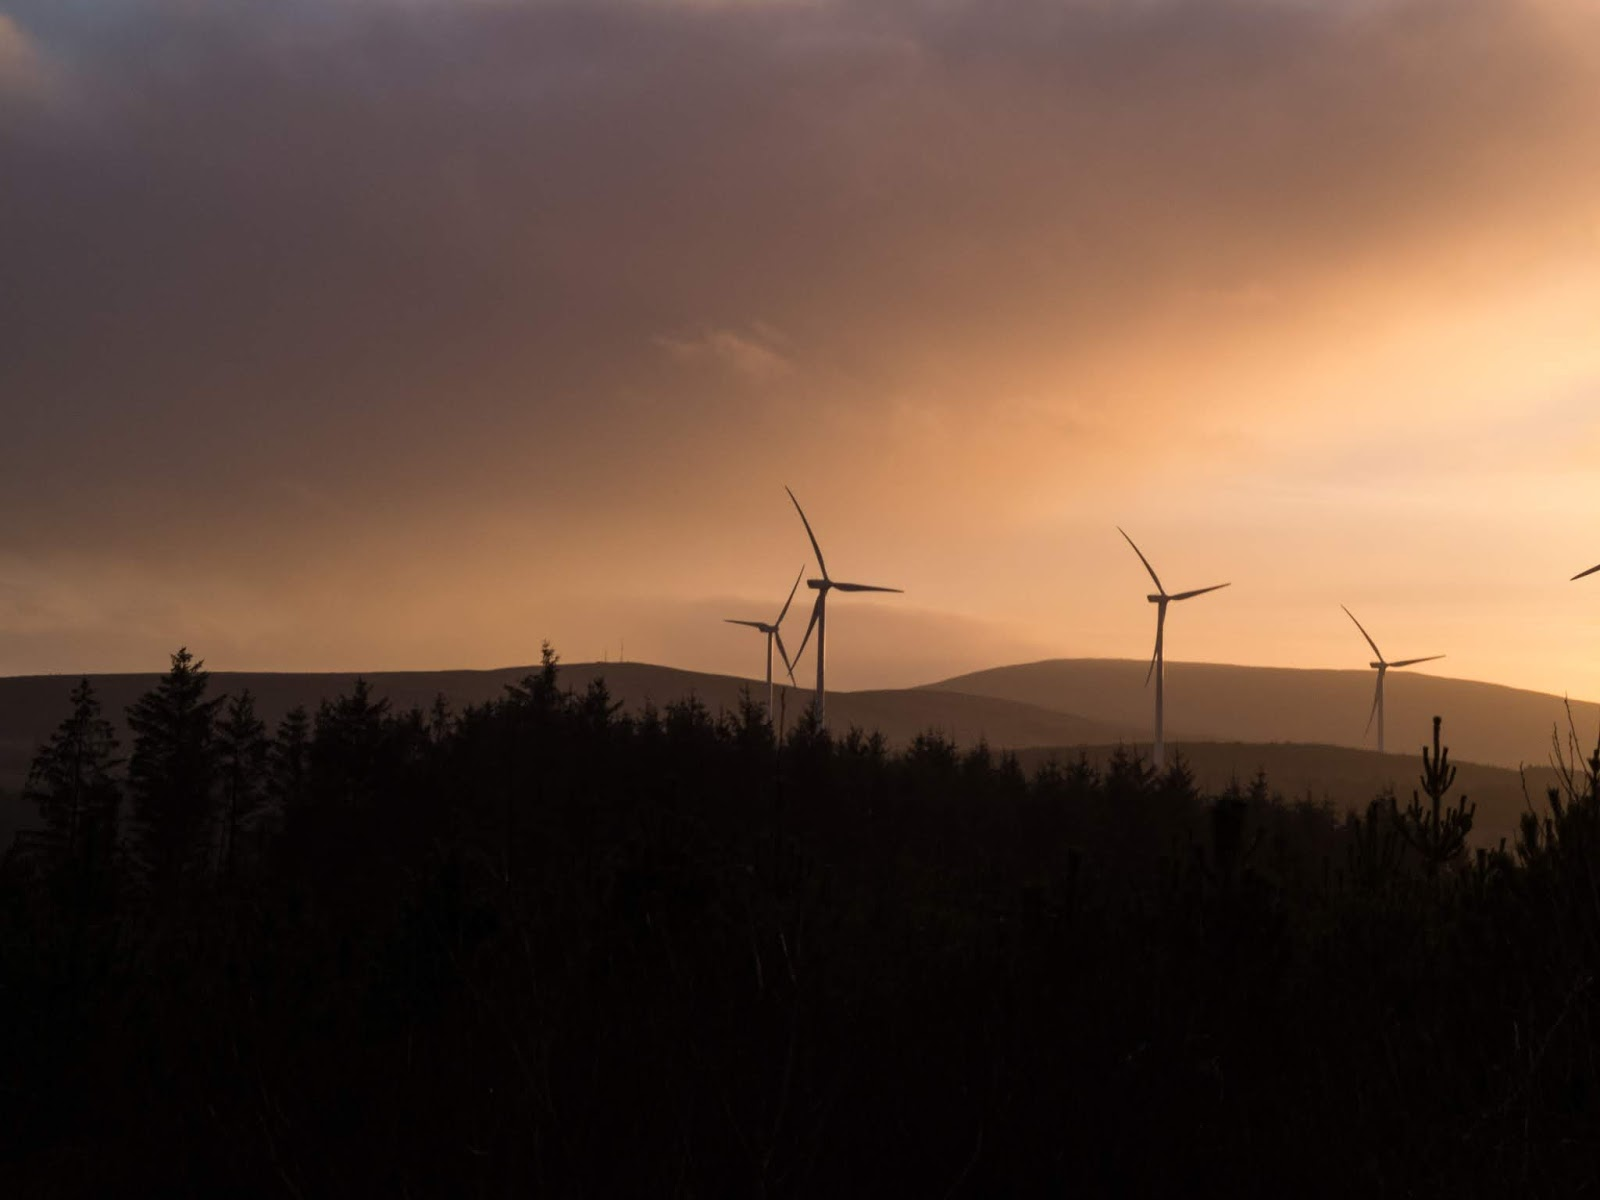 Sunset in the Boggeragh Mountains with conifers and wind turbines.